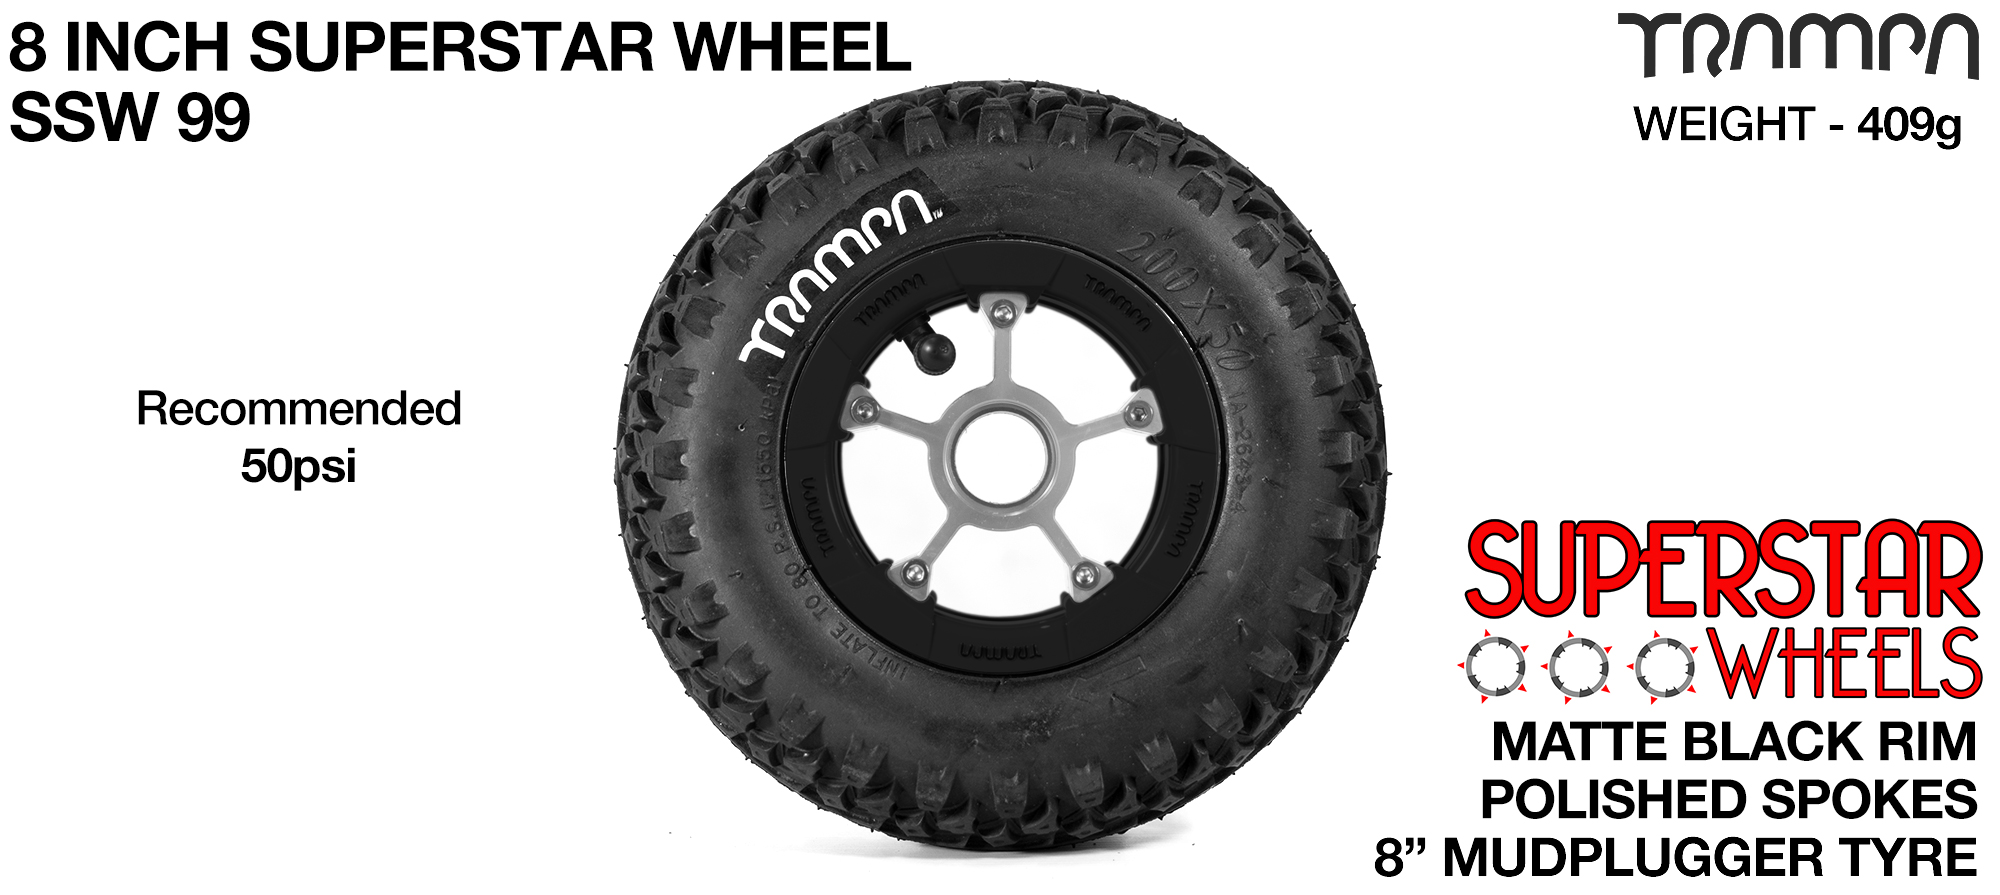 Superstar 8 inch wheels -  Matt Black Rim with Polished Spokes & Mud Plugger 8 Inch Tyre